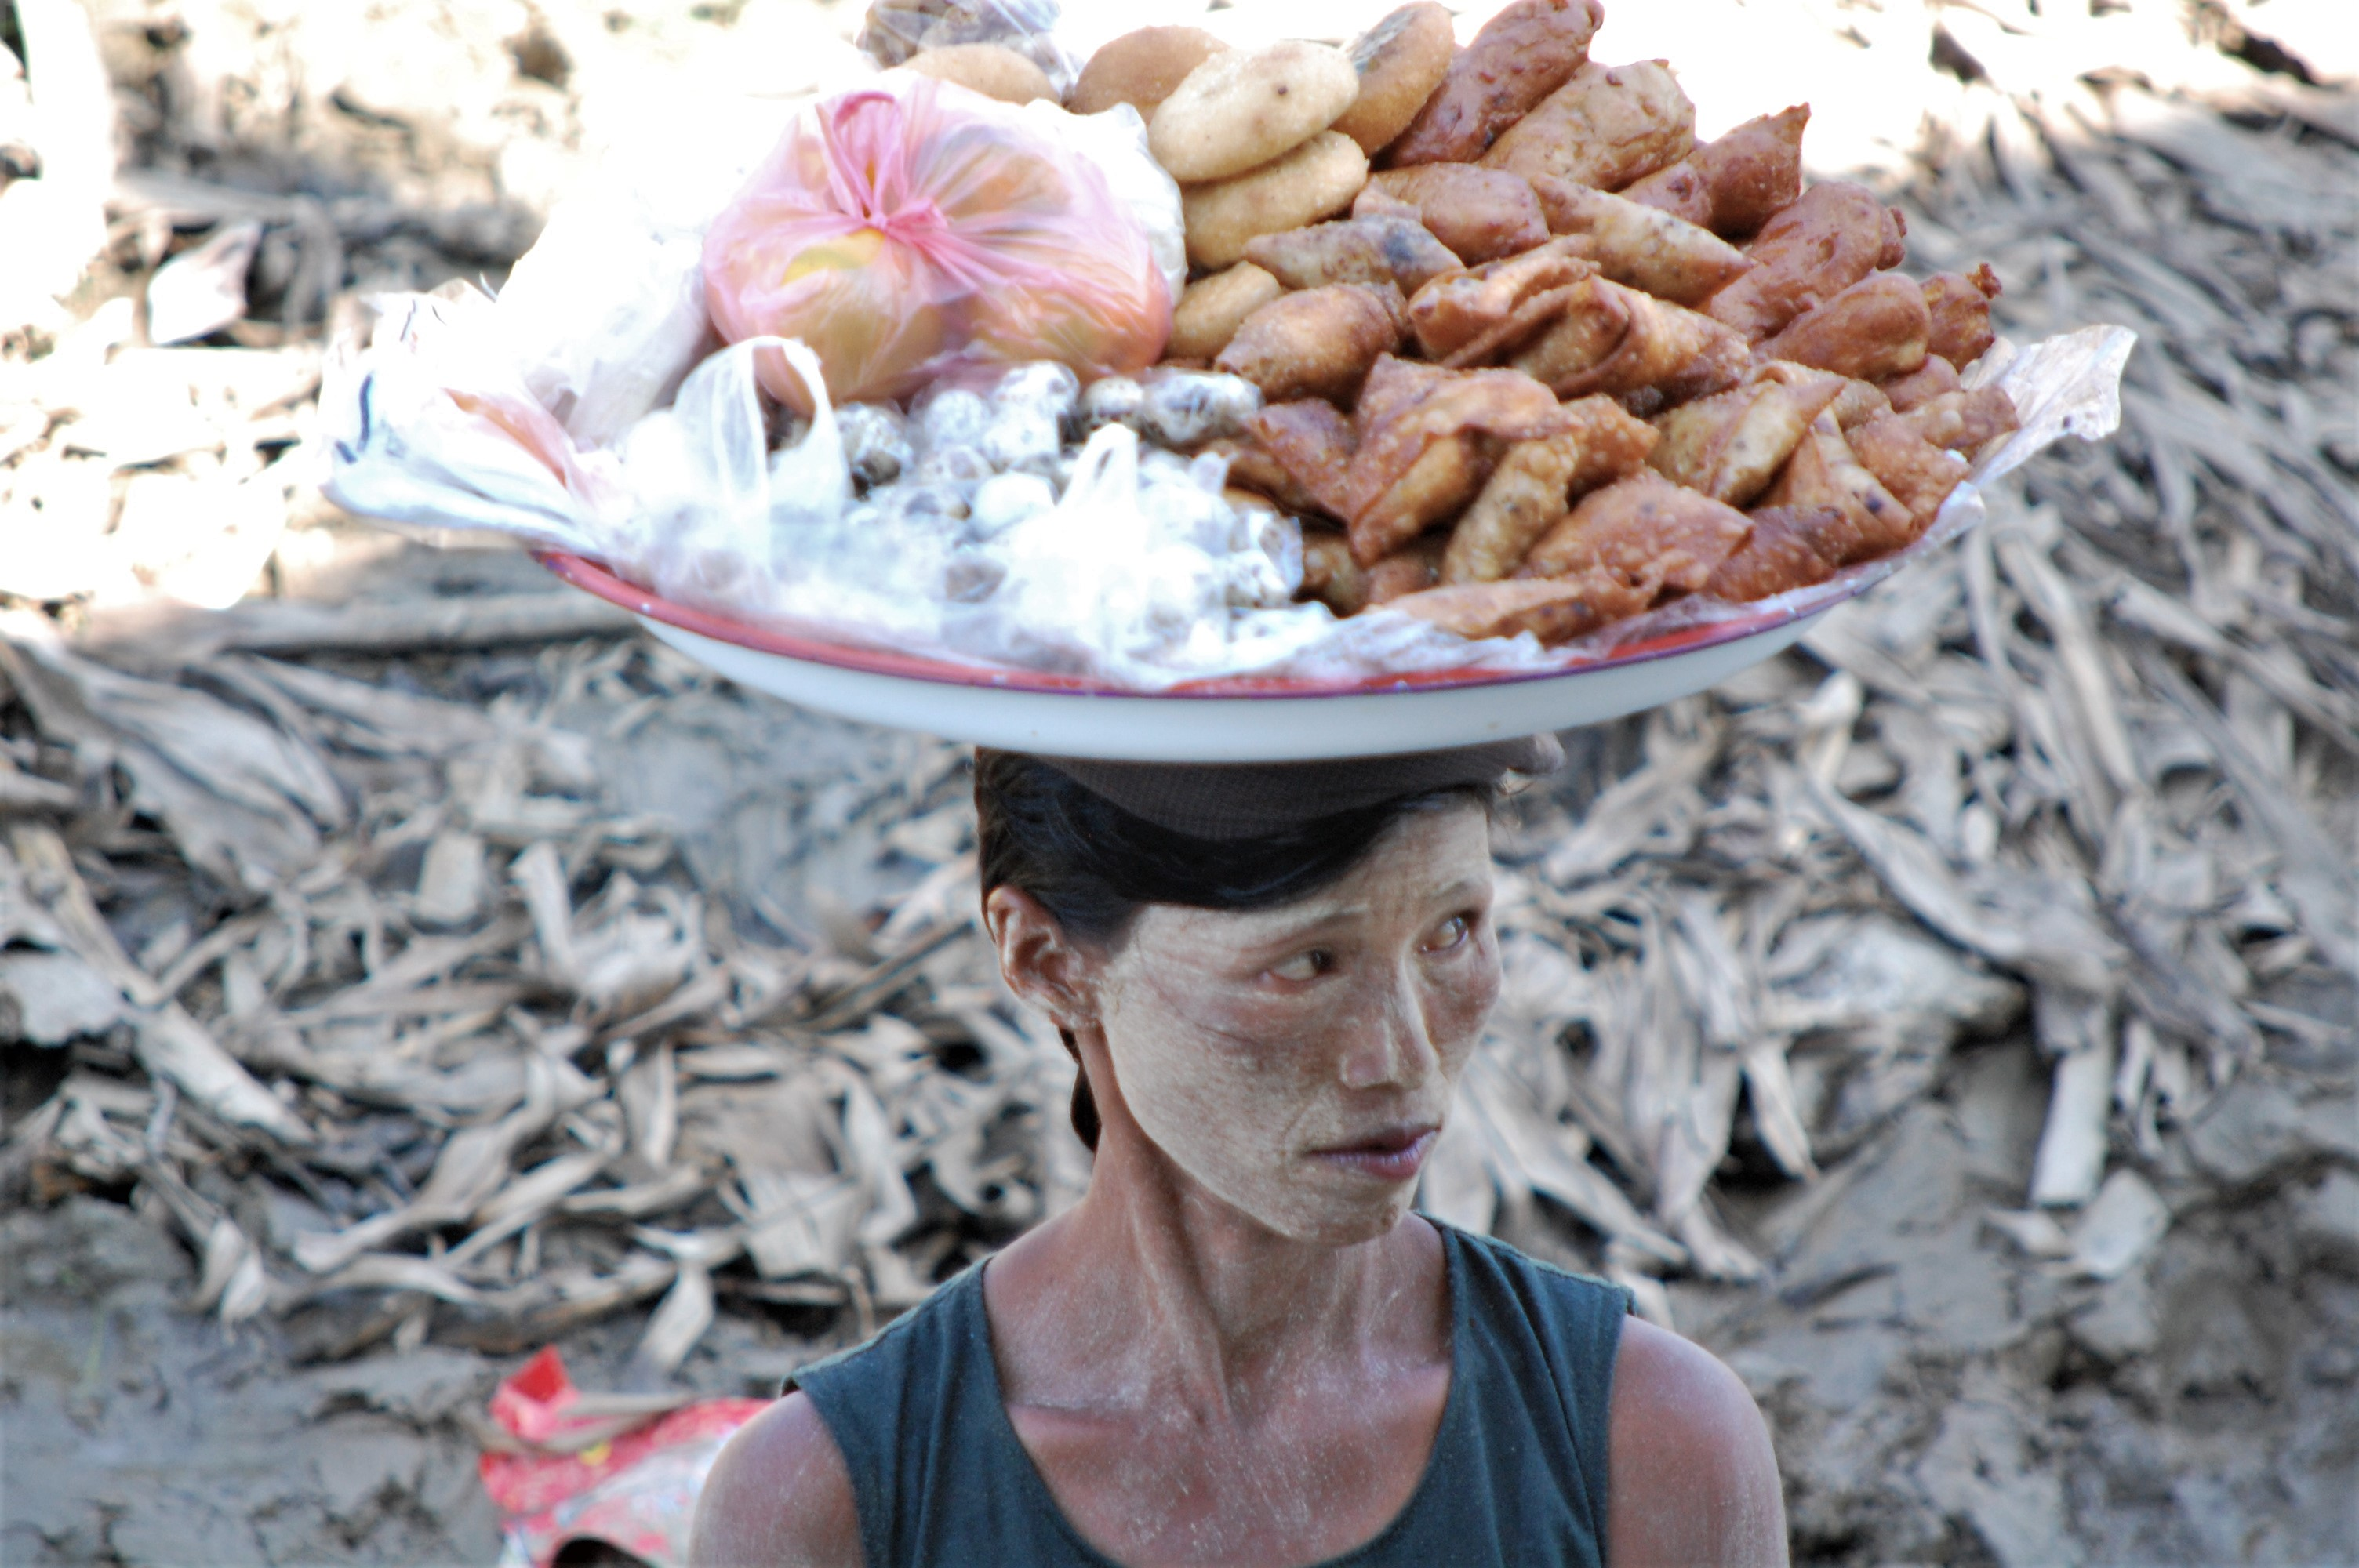 Market trader with food on head - Matthew Lightfoot